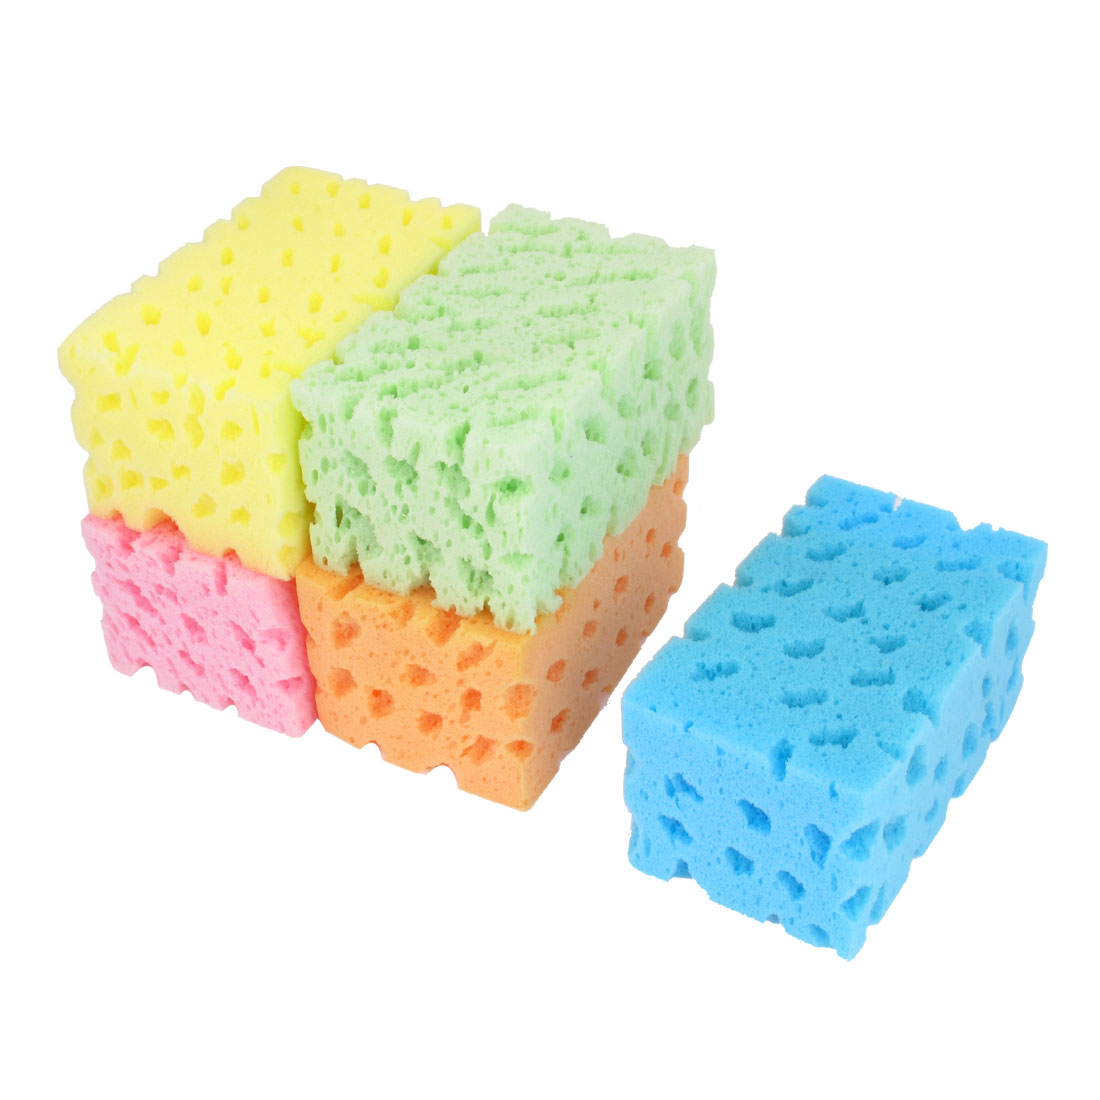 UXCELL 5 Pcs Cleaning Tool Colorful Bone Shape Sponge Pad Cushion For Auto Cars